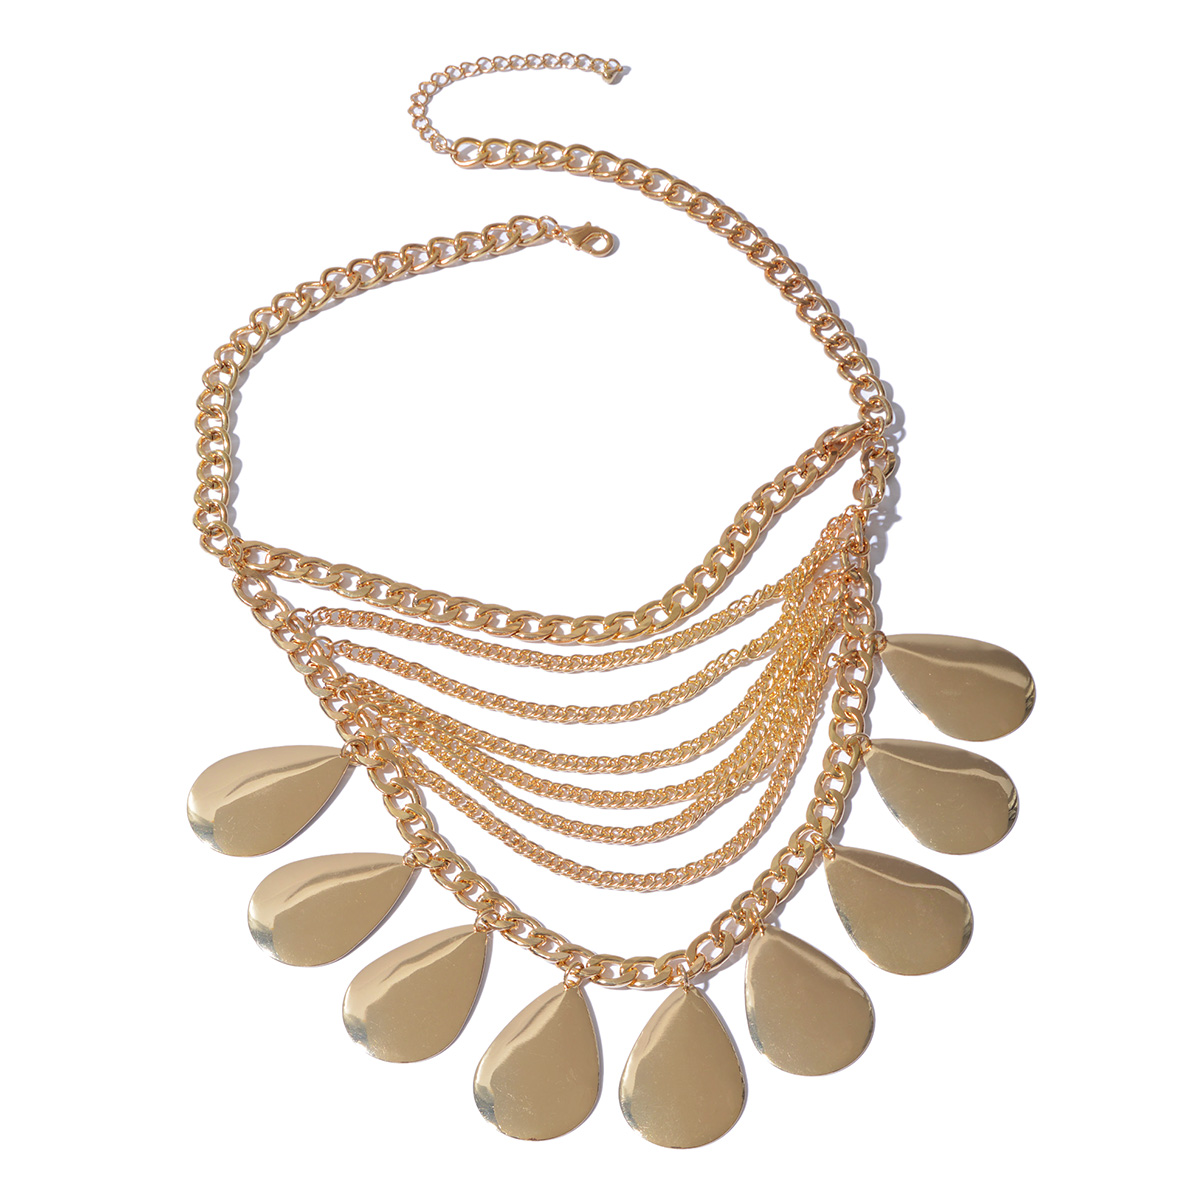 Necklace (18-20 in) in Goldtone